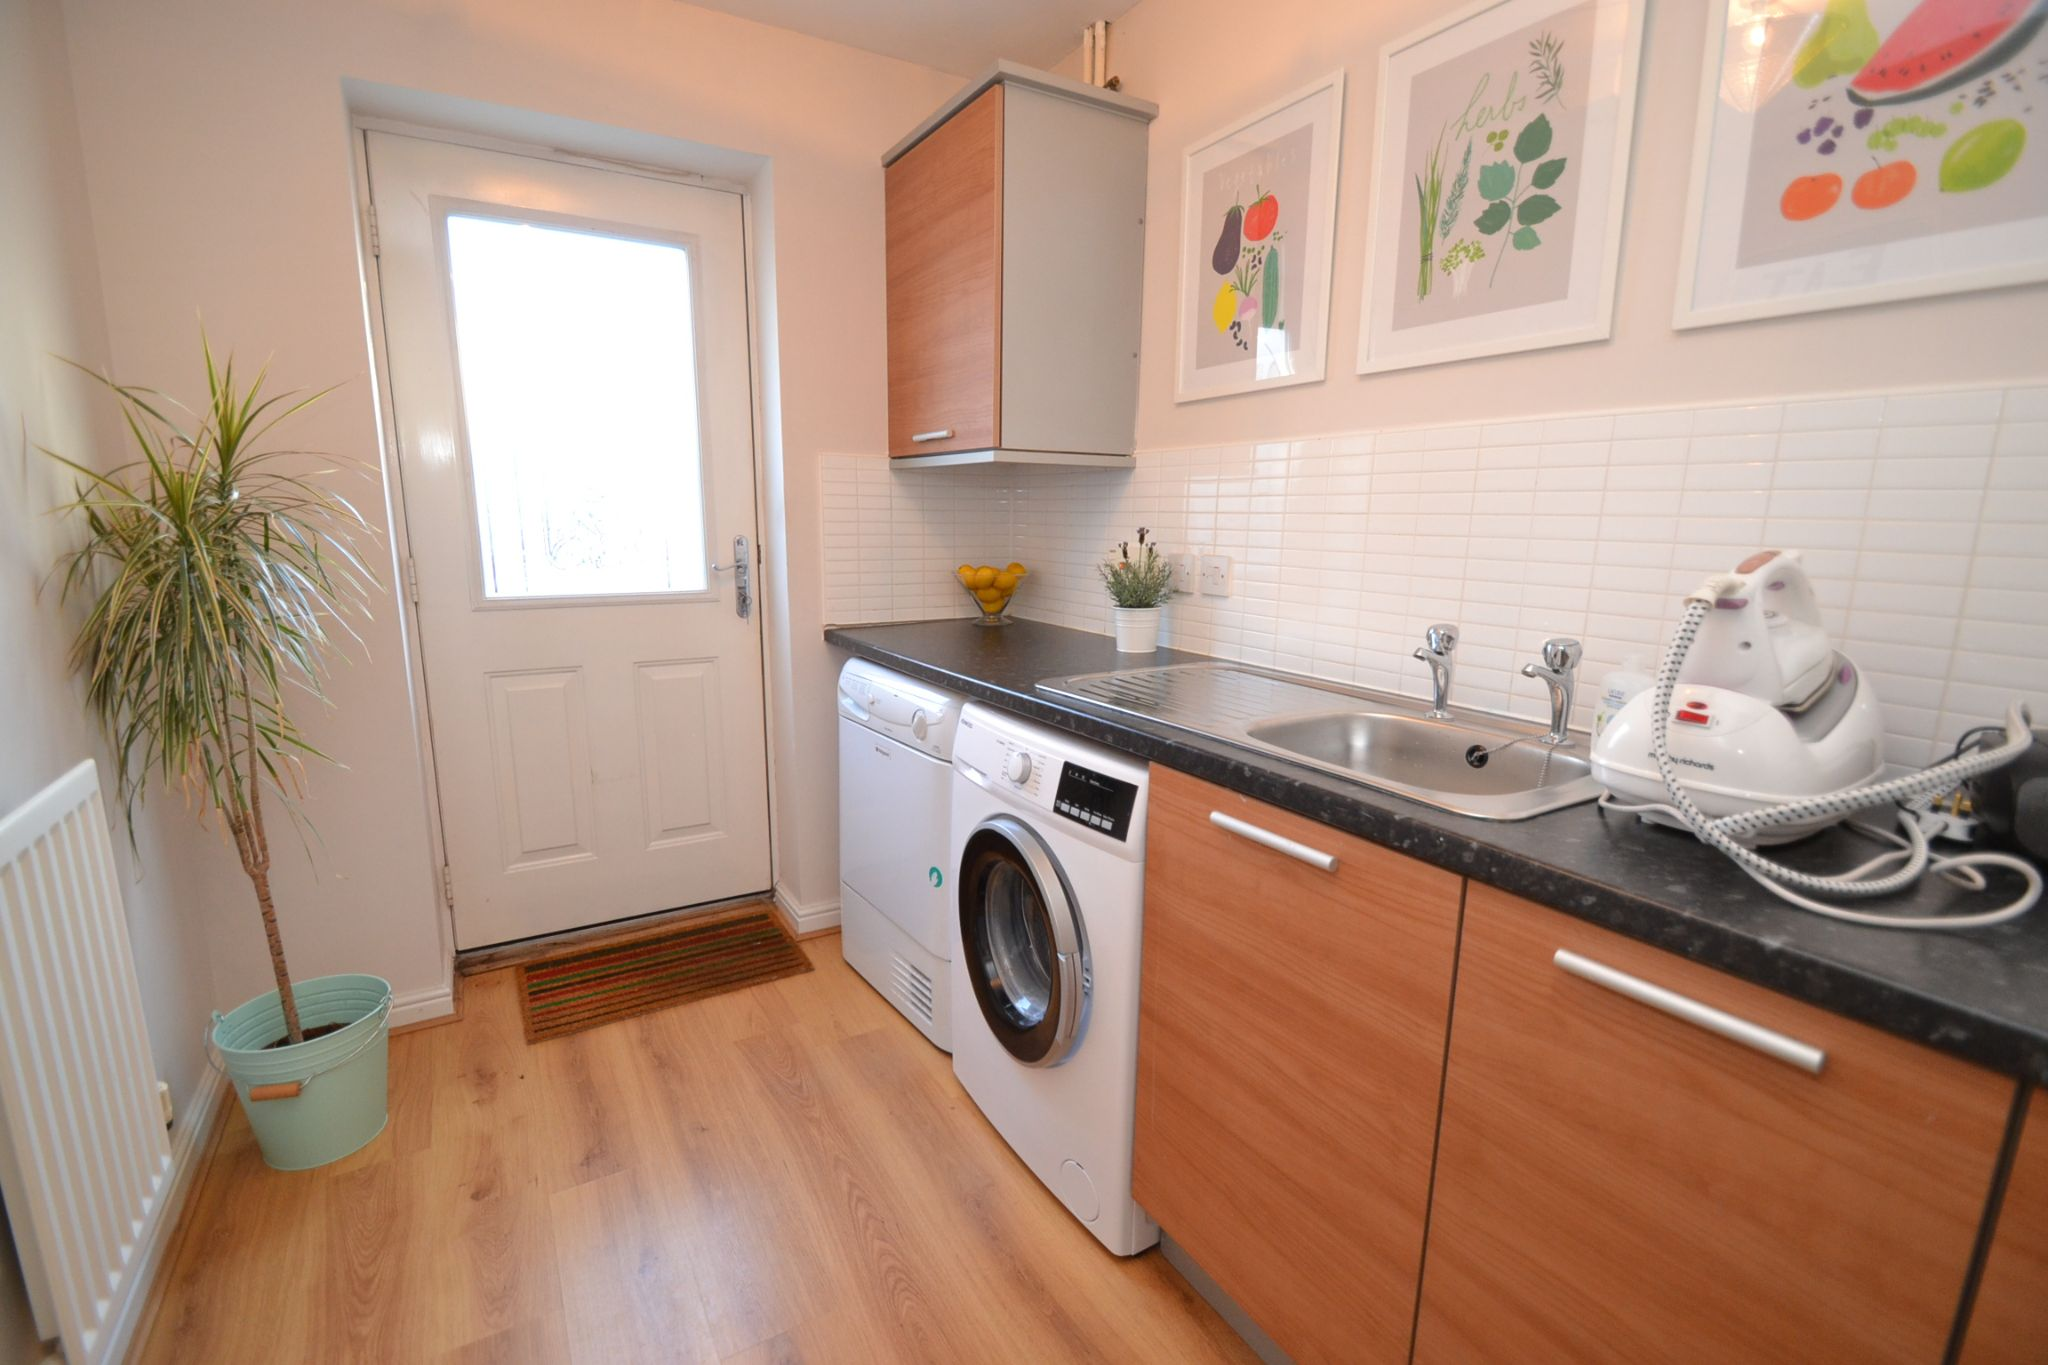 4 Bedroom End Terraced House For Sale - Photograph 4